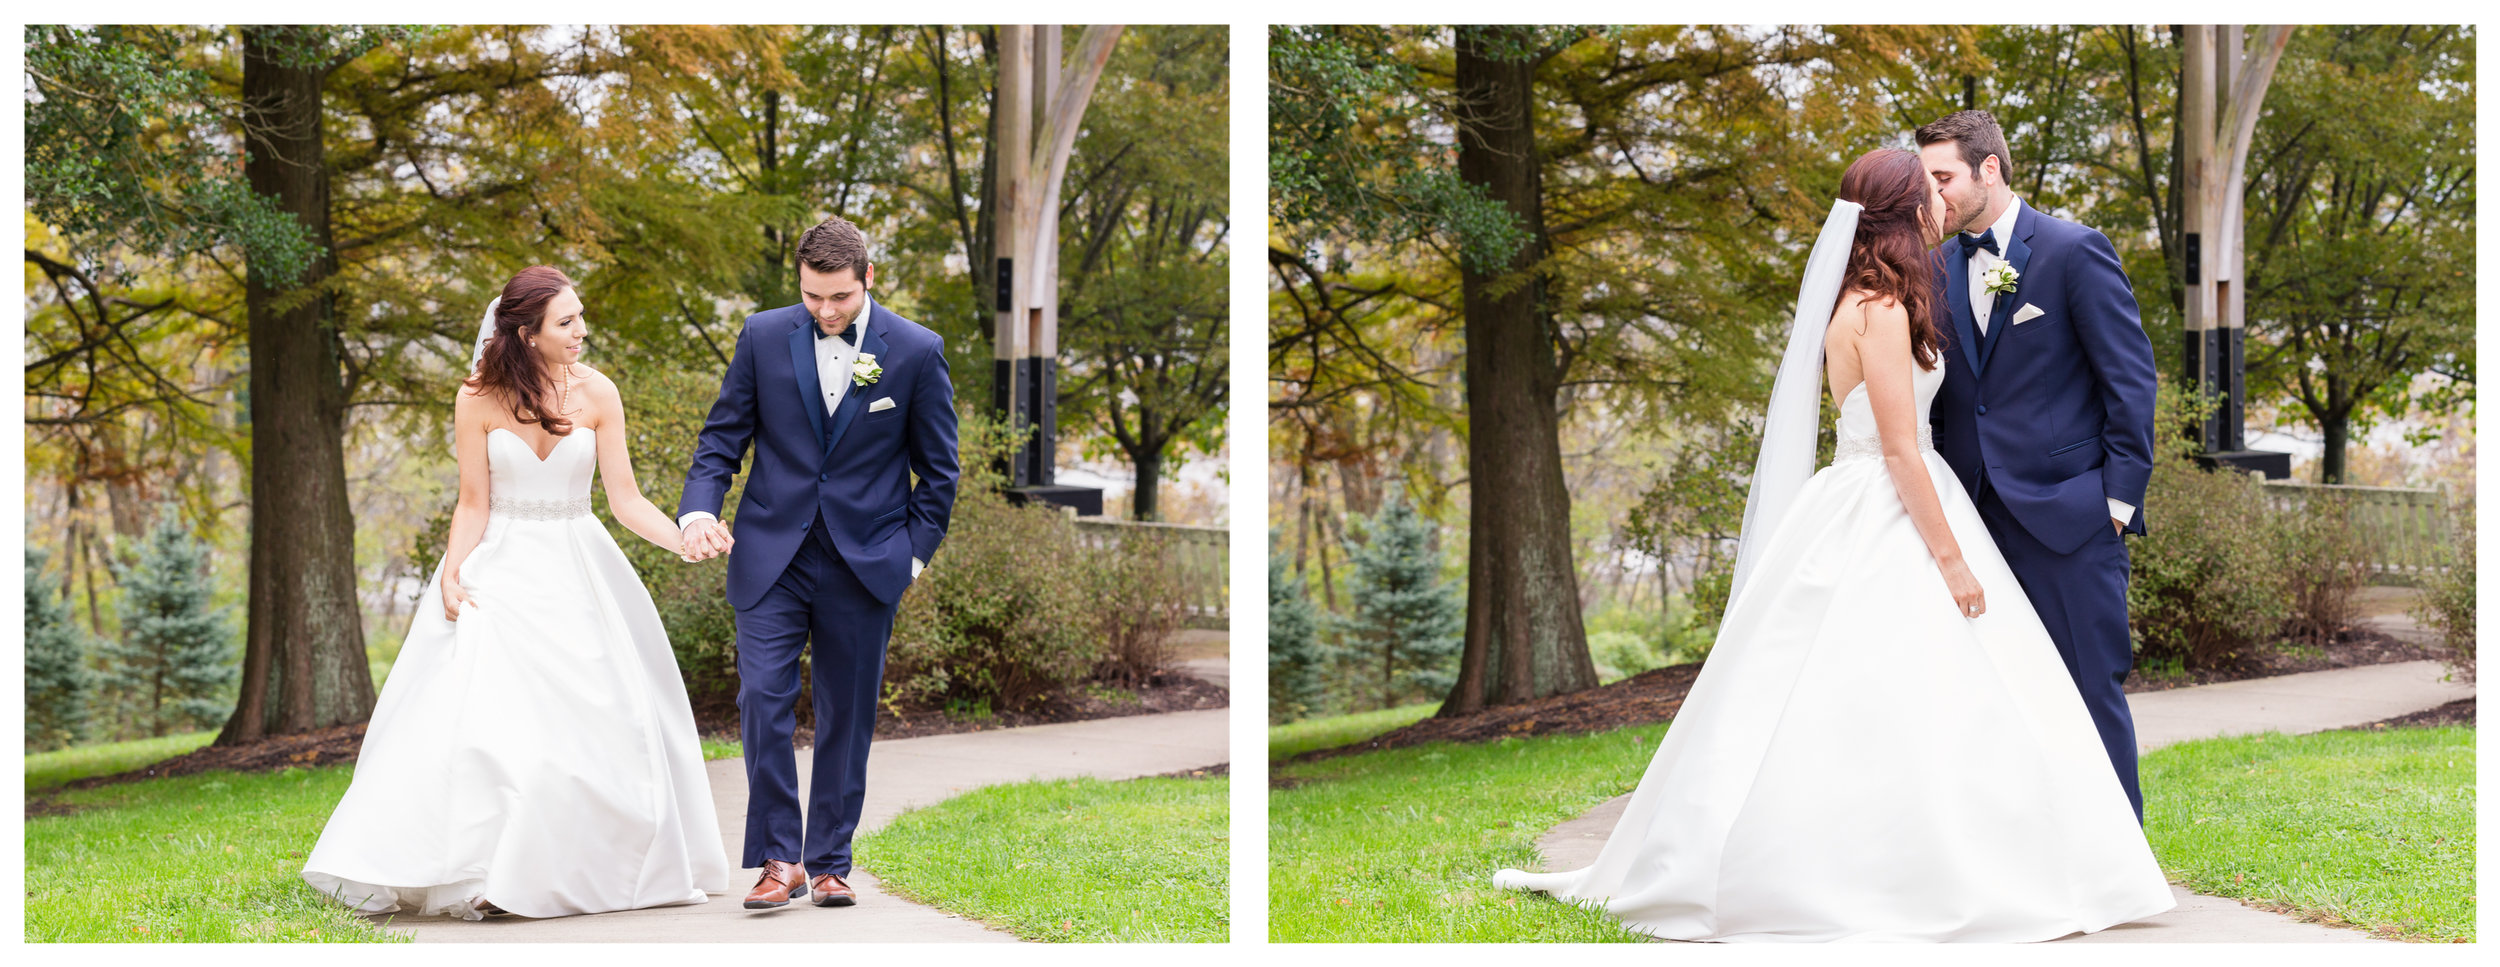 Alms Park Wedding